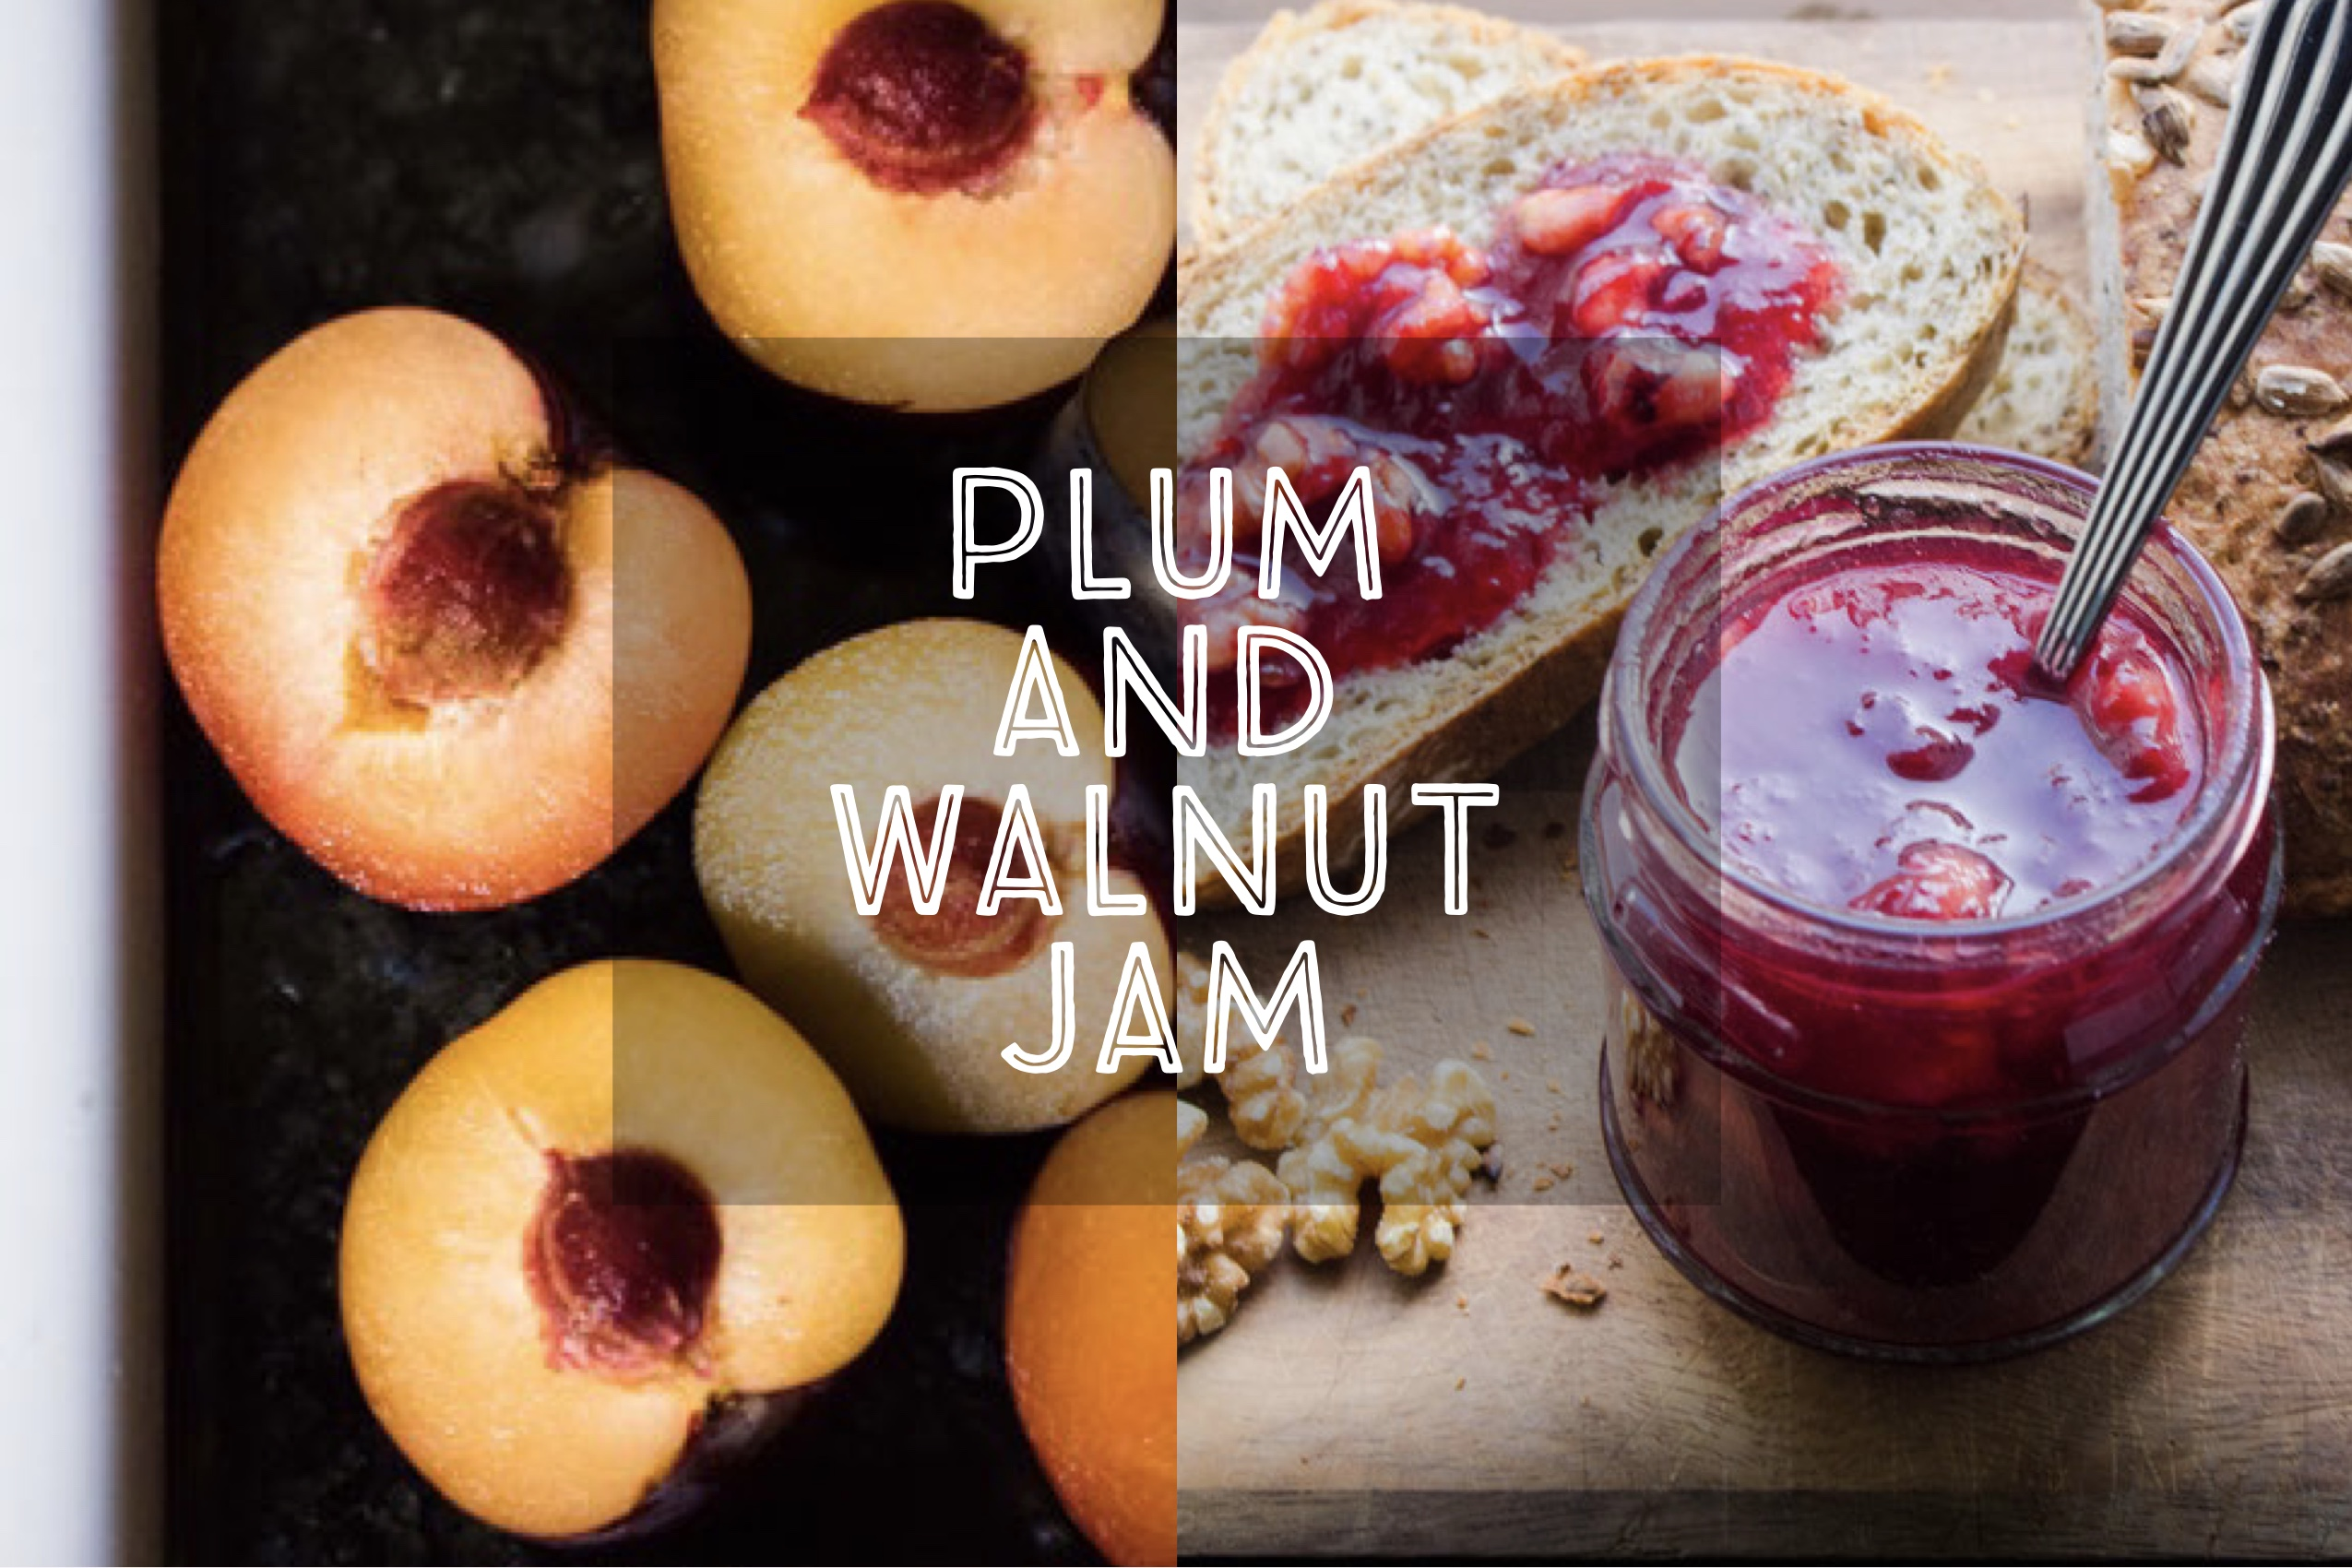 Plum and Walnut Jam